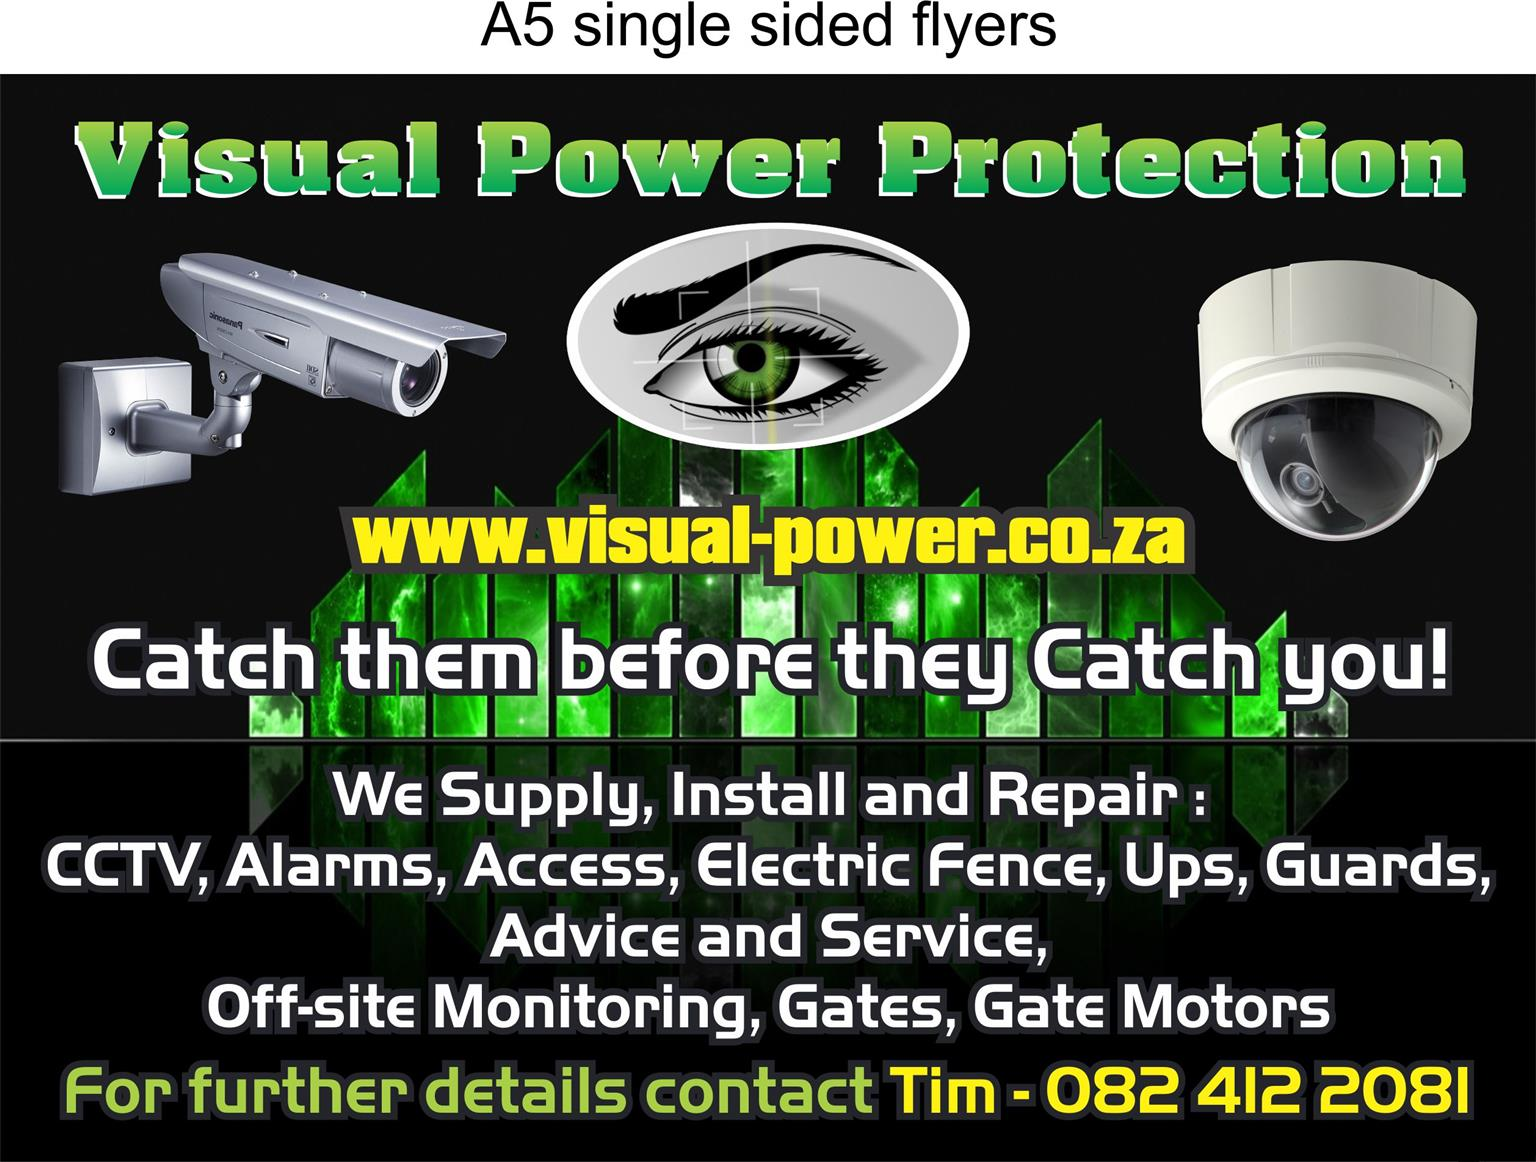 Visual Power Protection